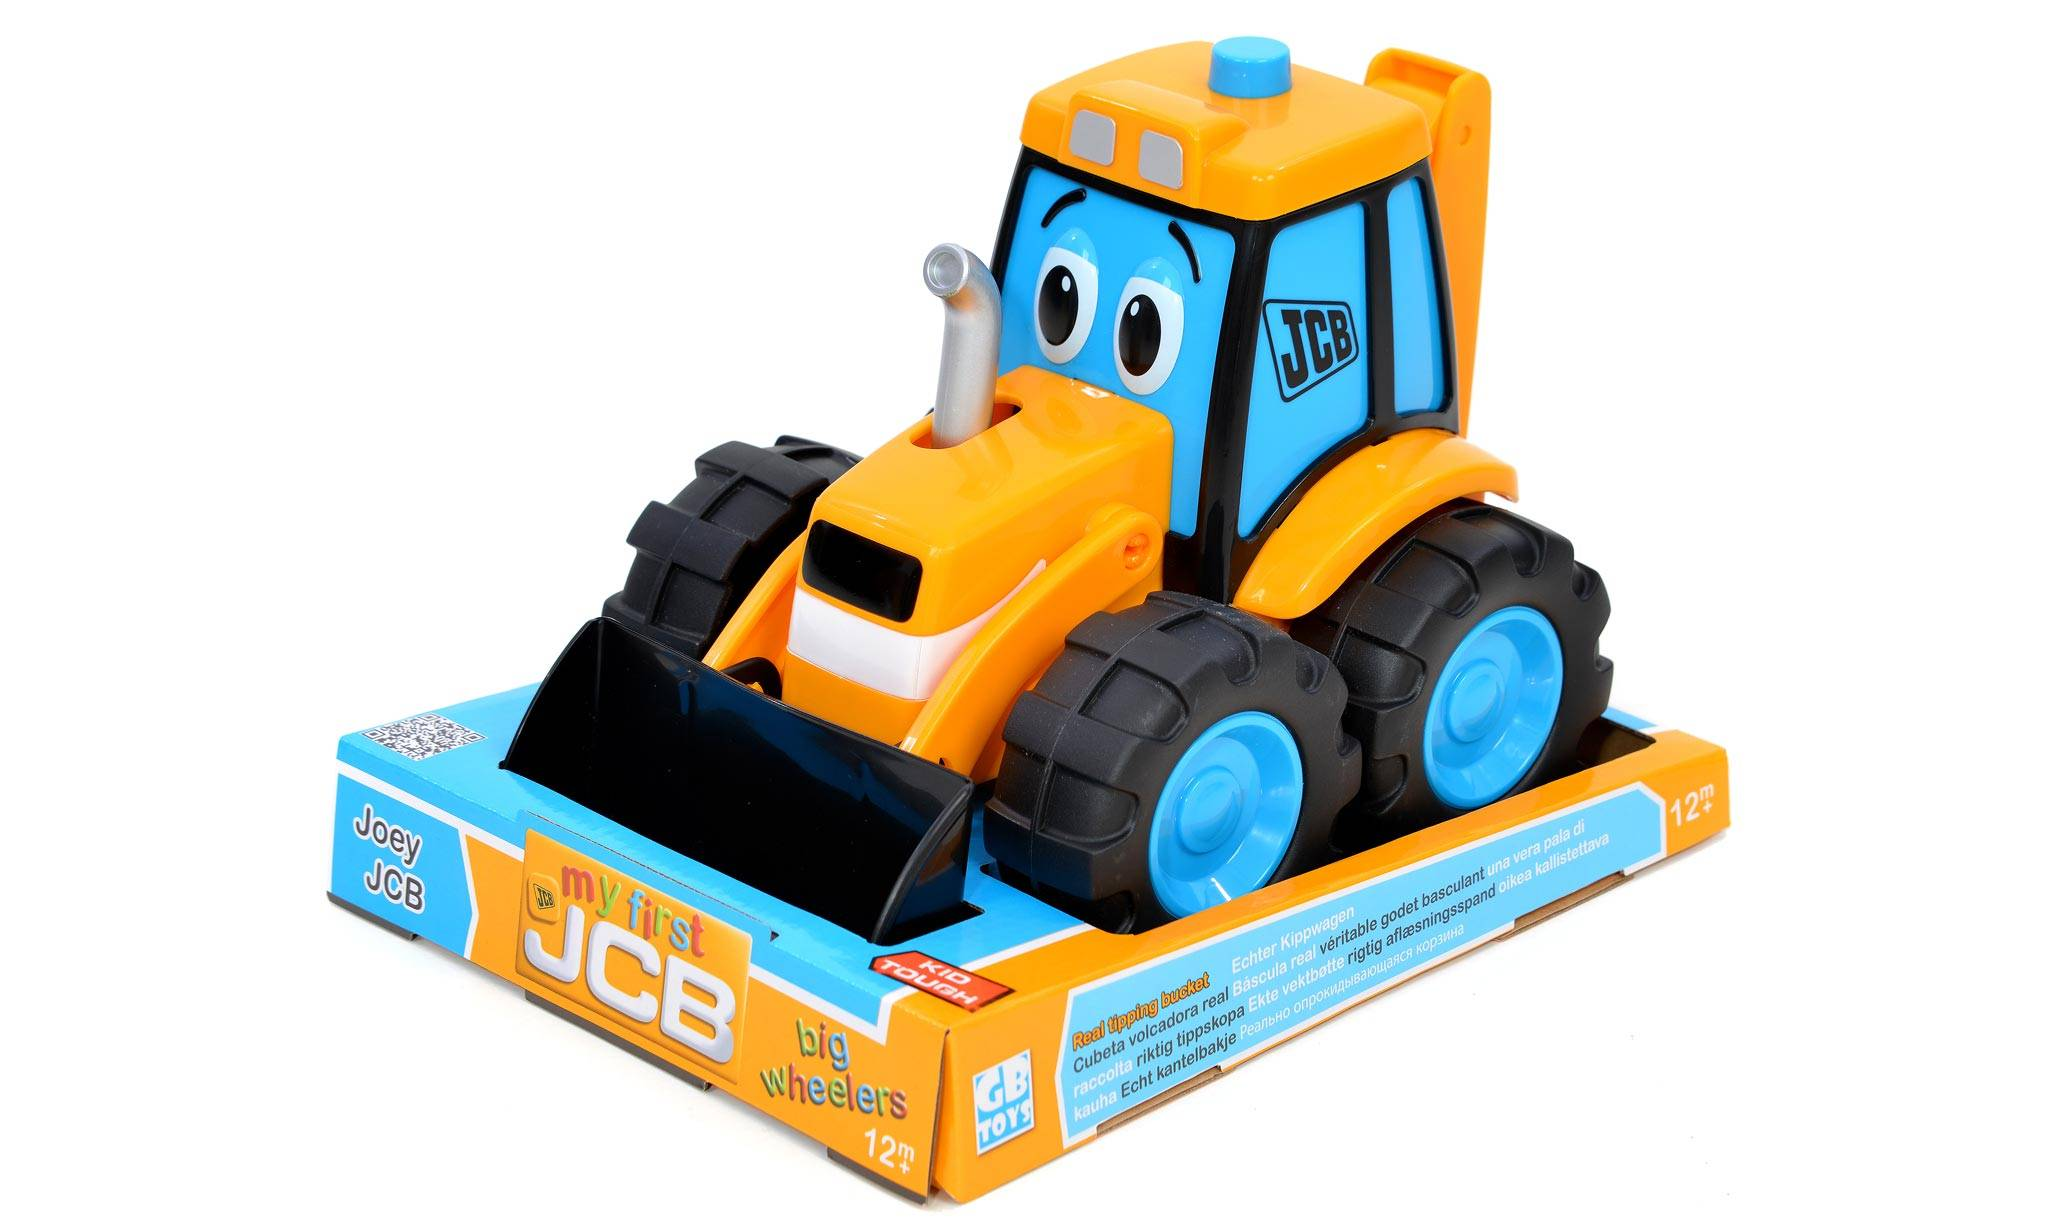 JCB My First JCB Big Wheeler Joey